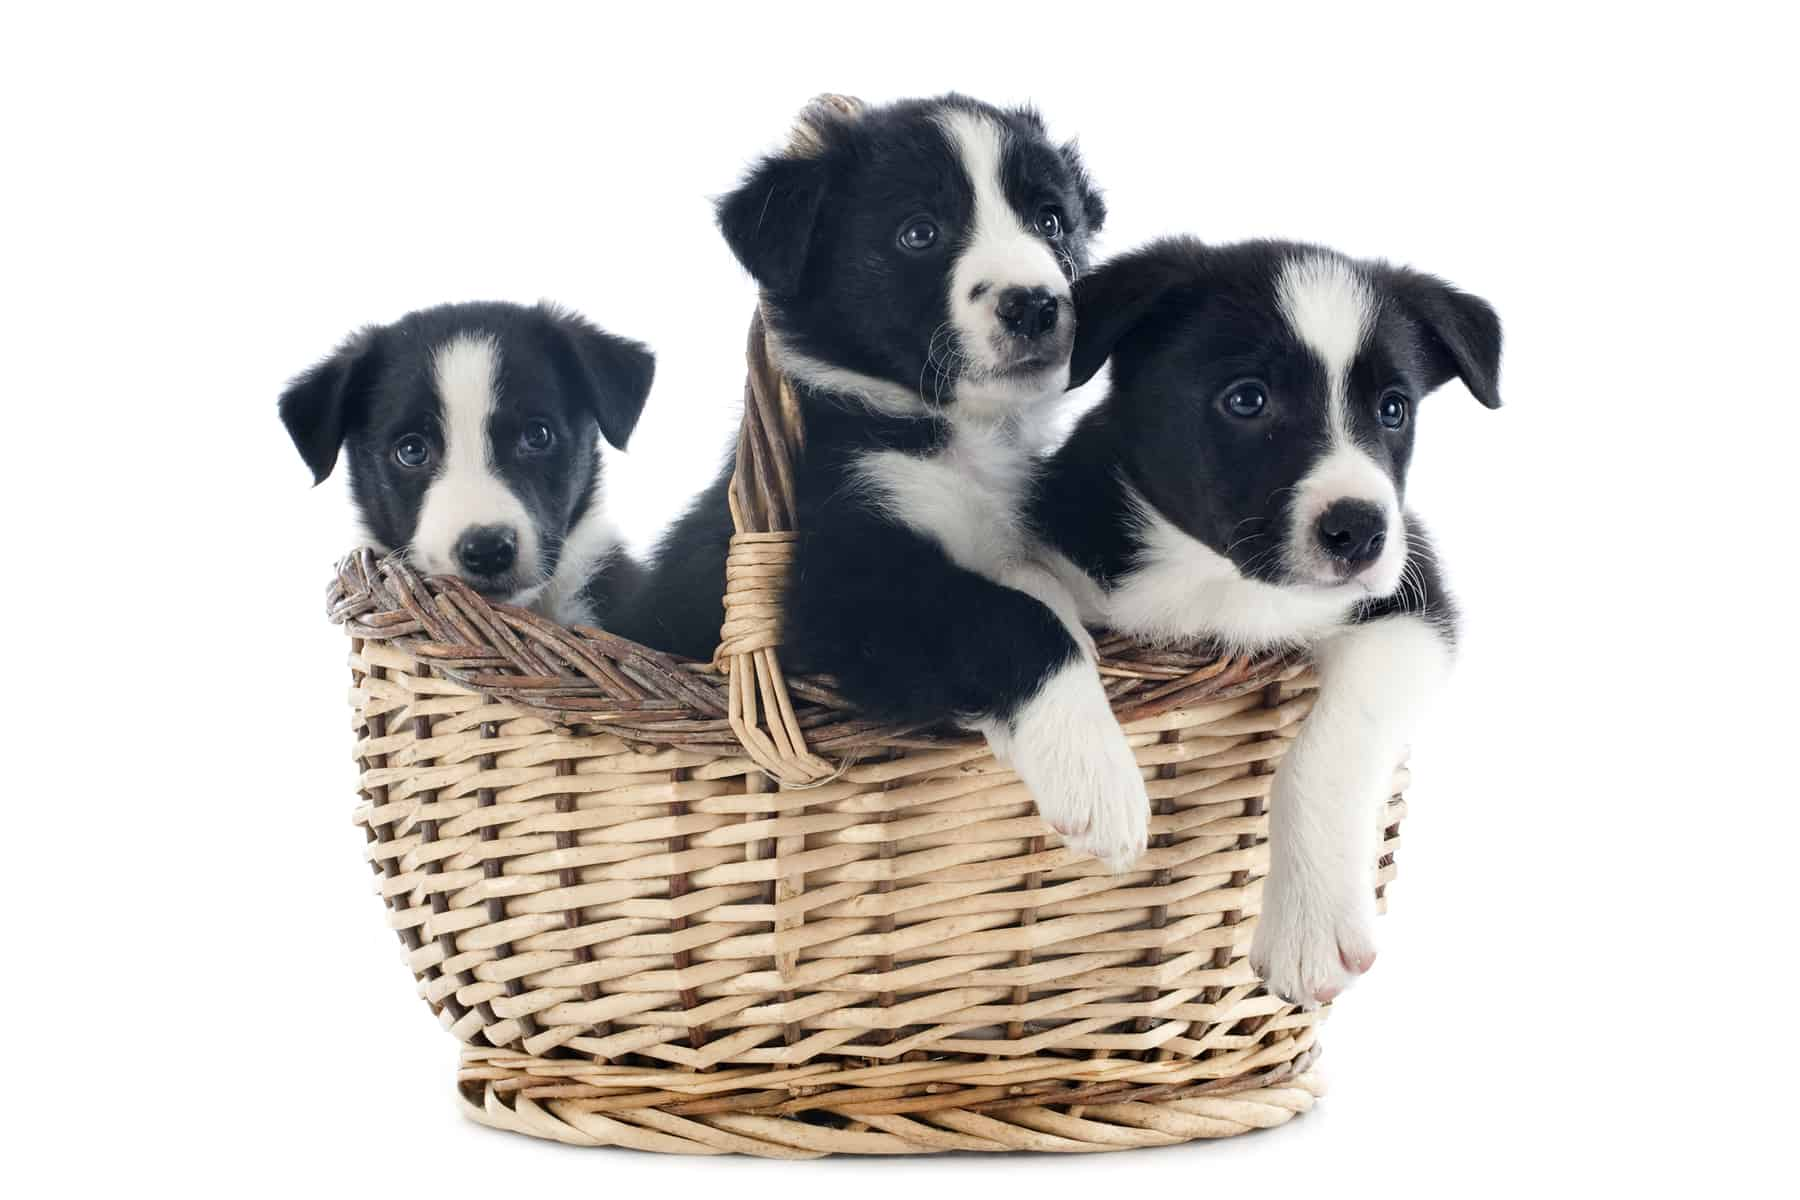 Border Collie puppies in a basket